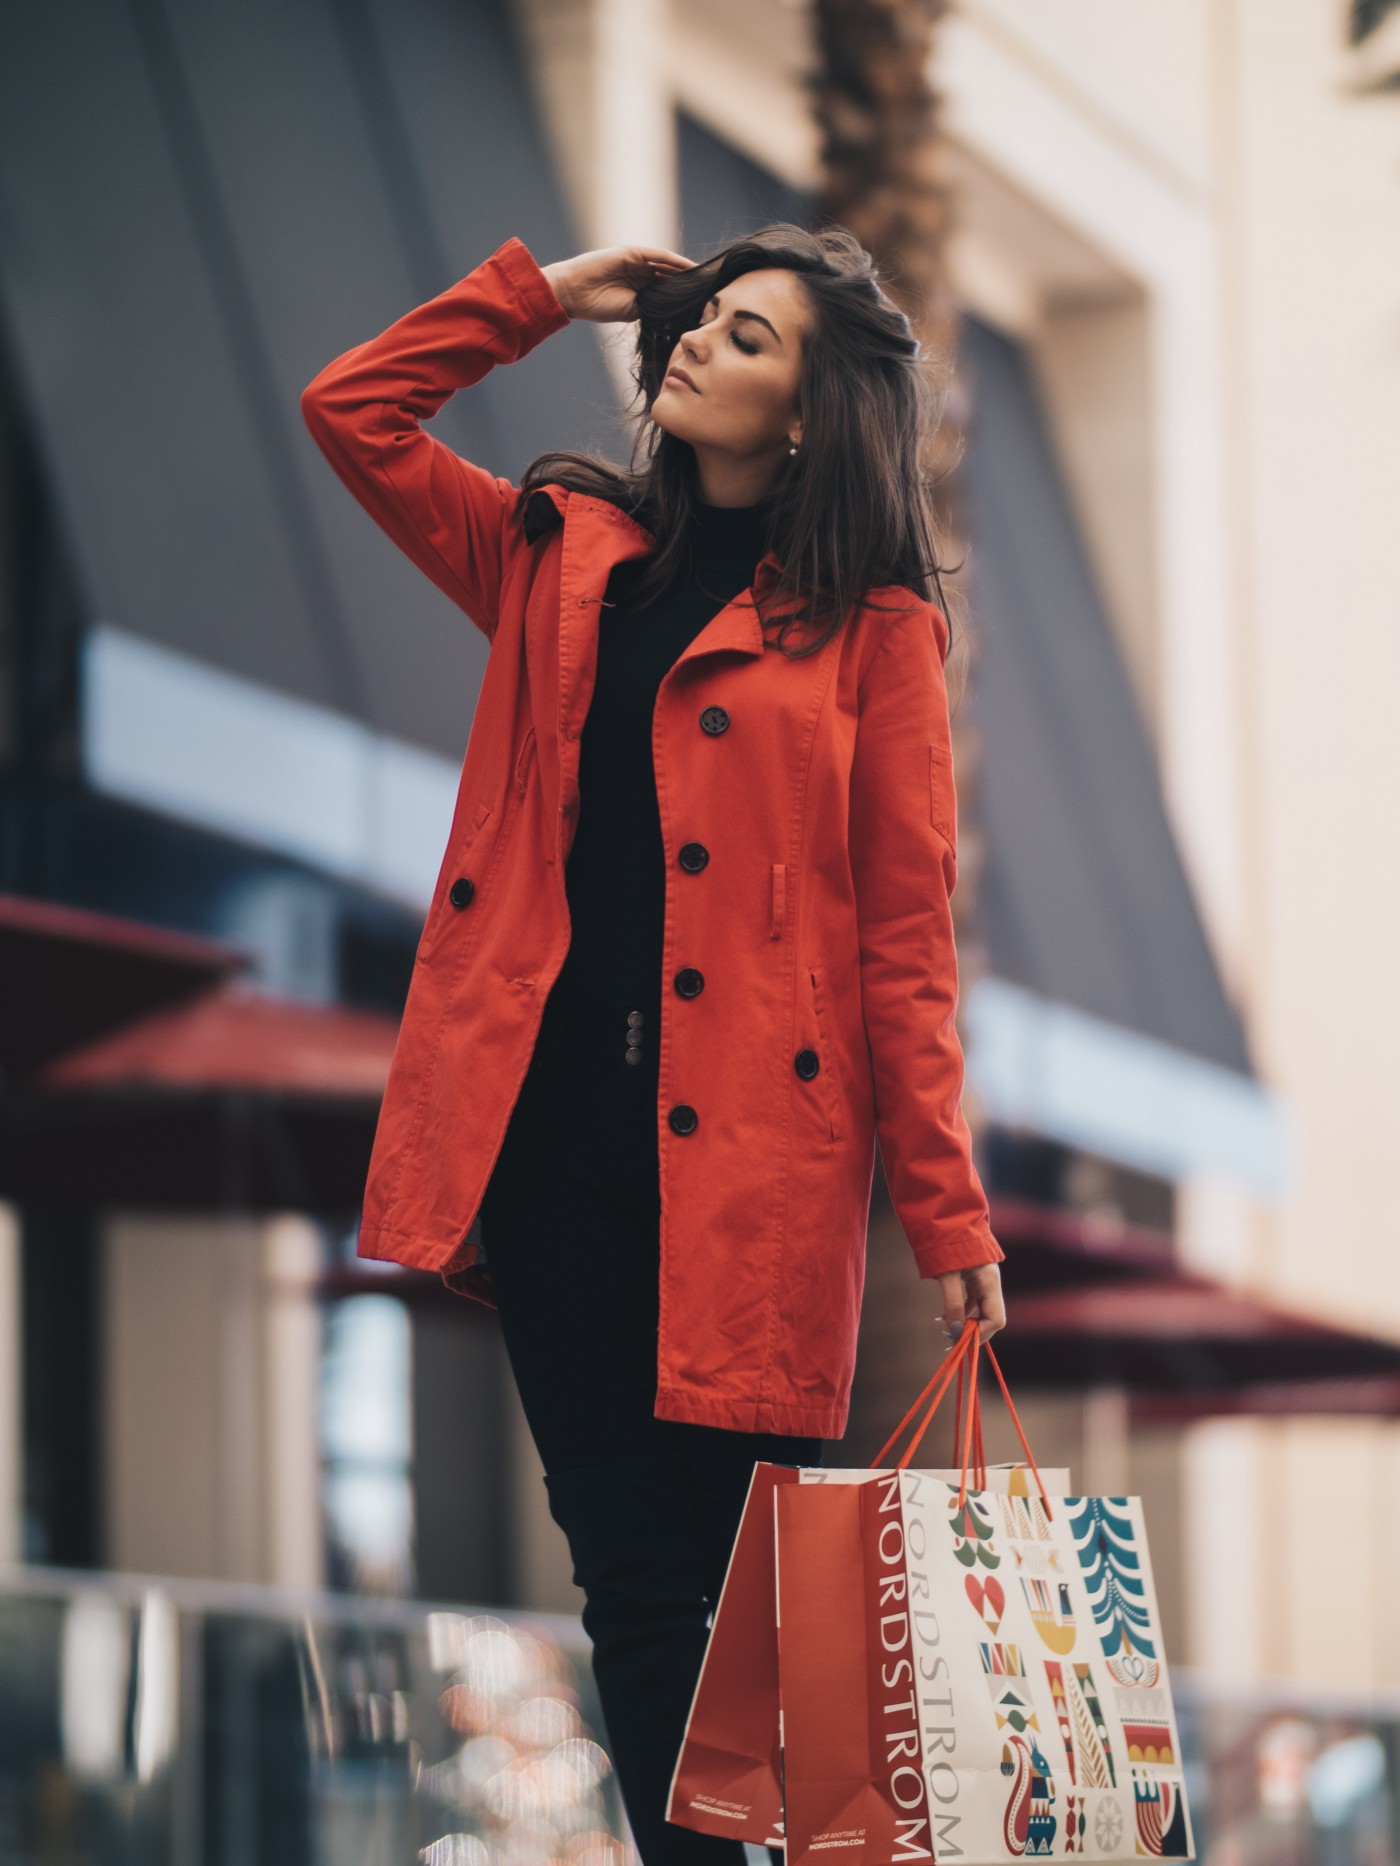 A brunette lovingly caressing her own hair, eyes closed, while walking outside with a hand full of shopping bags from Nordstrom's.